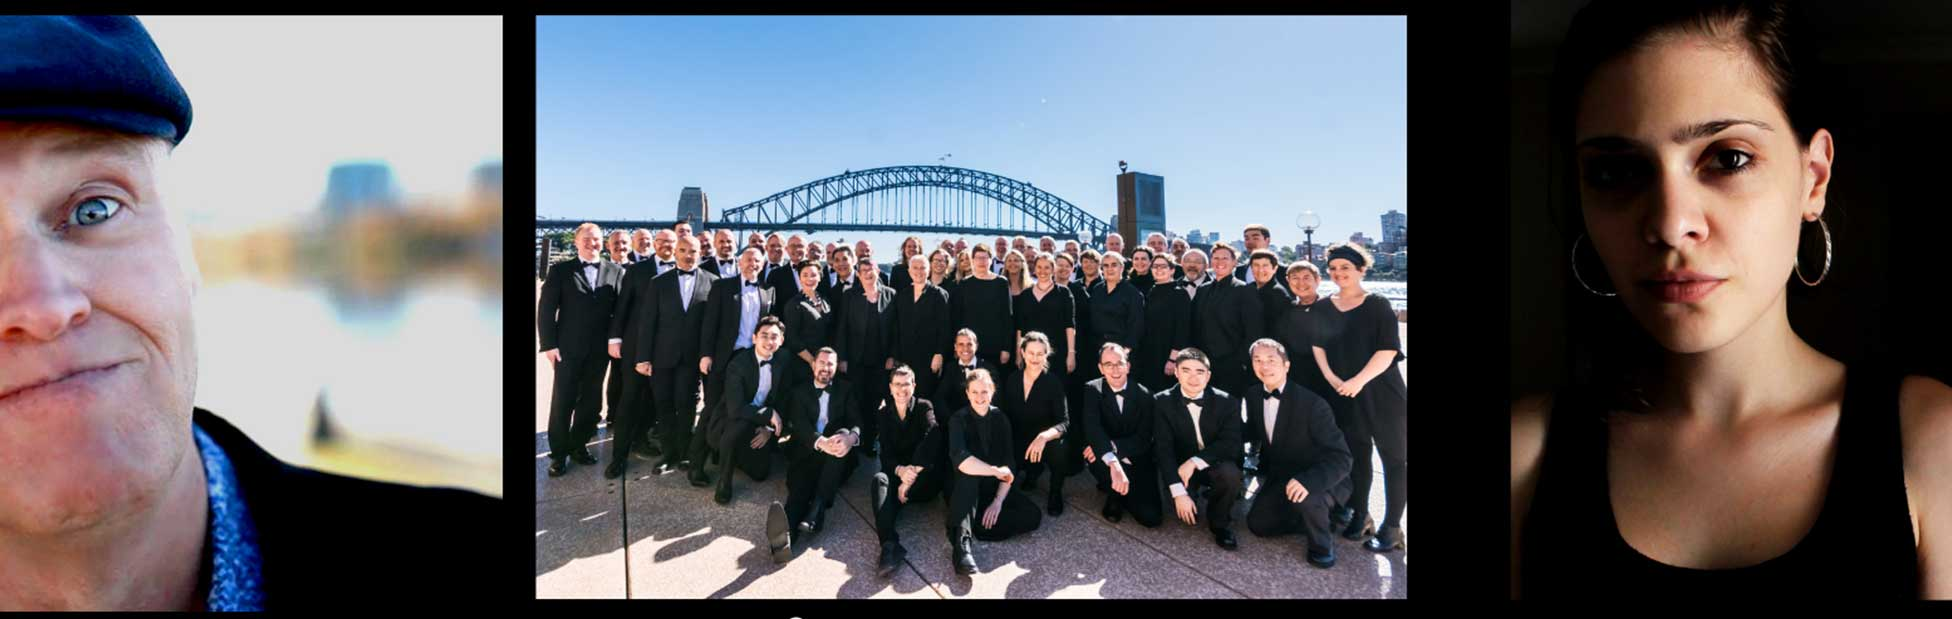 Choir posing for photo in front of Sydney Harbour Bridge